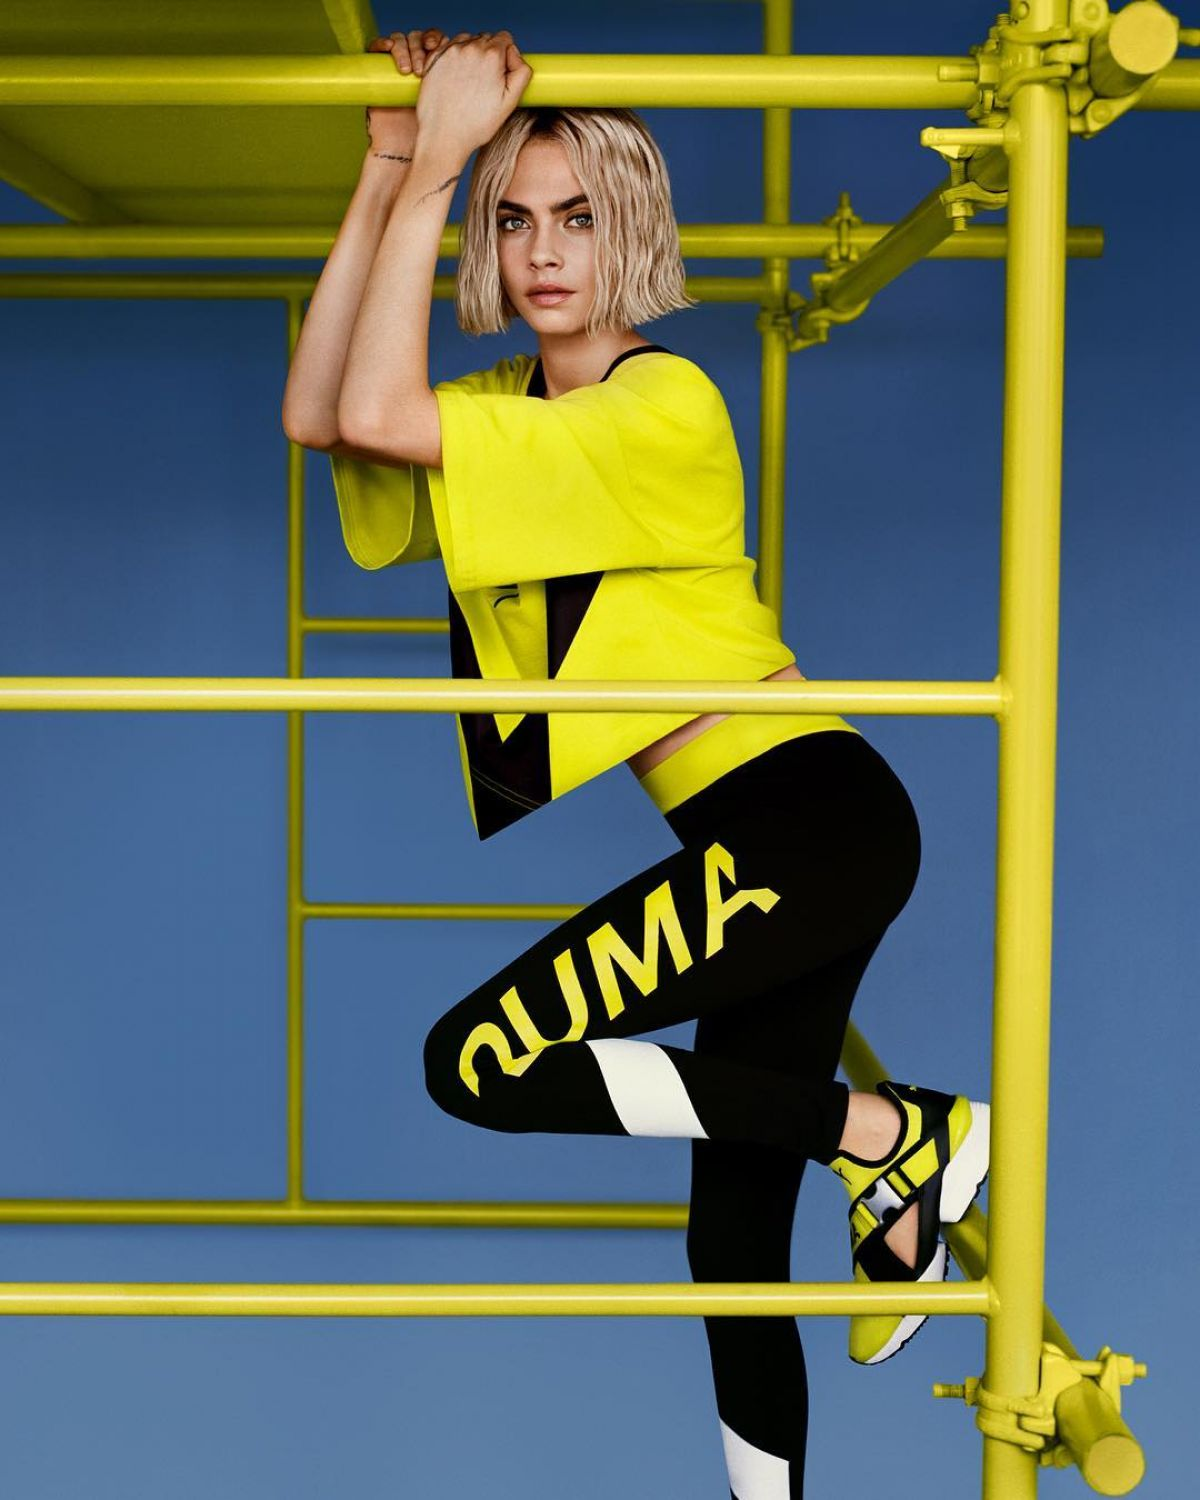 85210c002d11 CARA DELEVINGNE for Puma Muse Cut-out Sneaker 2018 Campaign - HawtCelebs